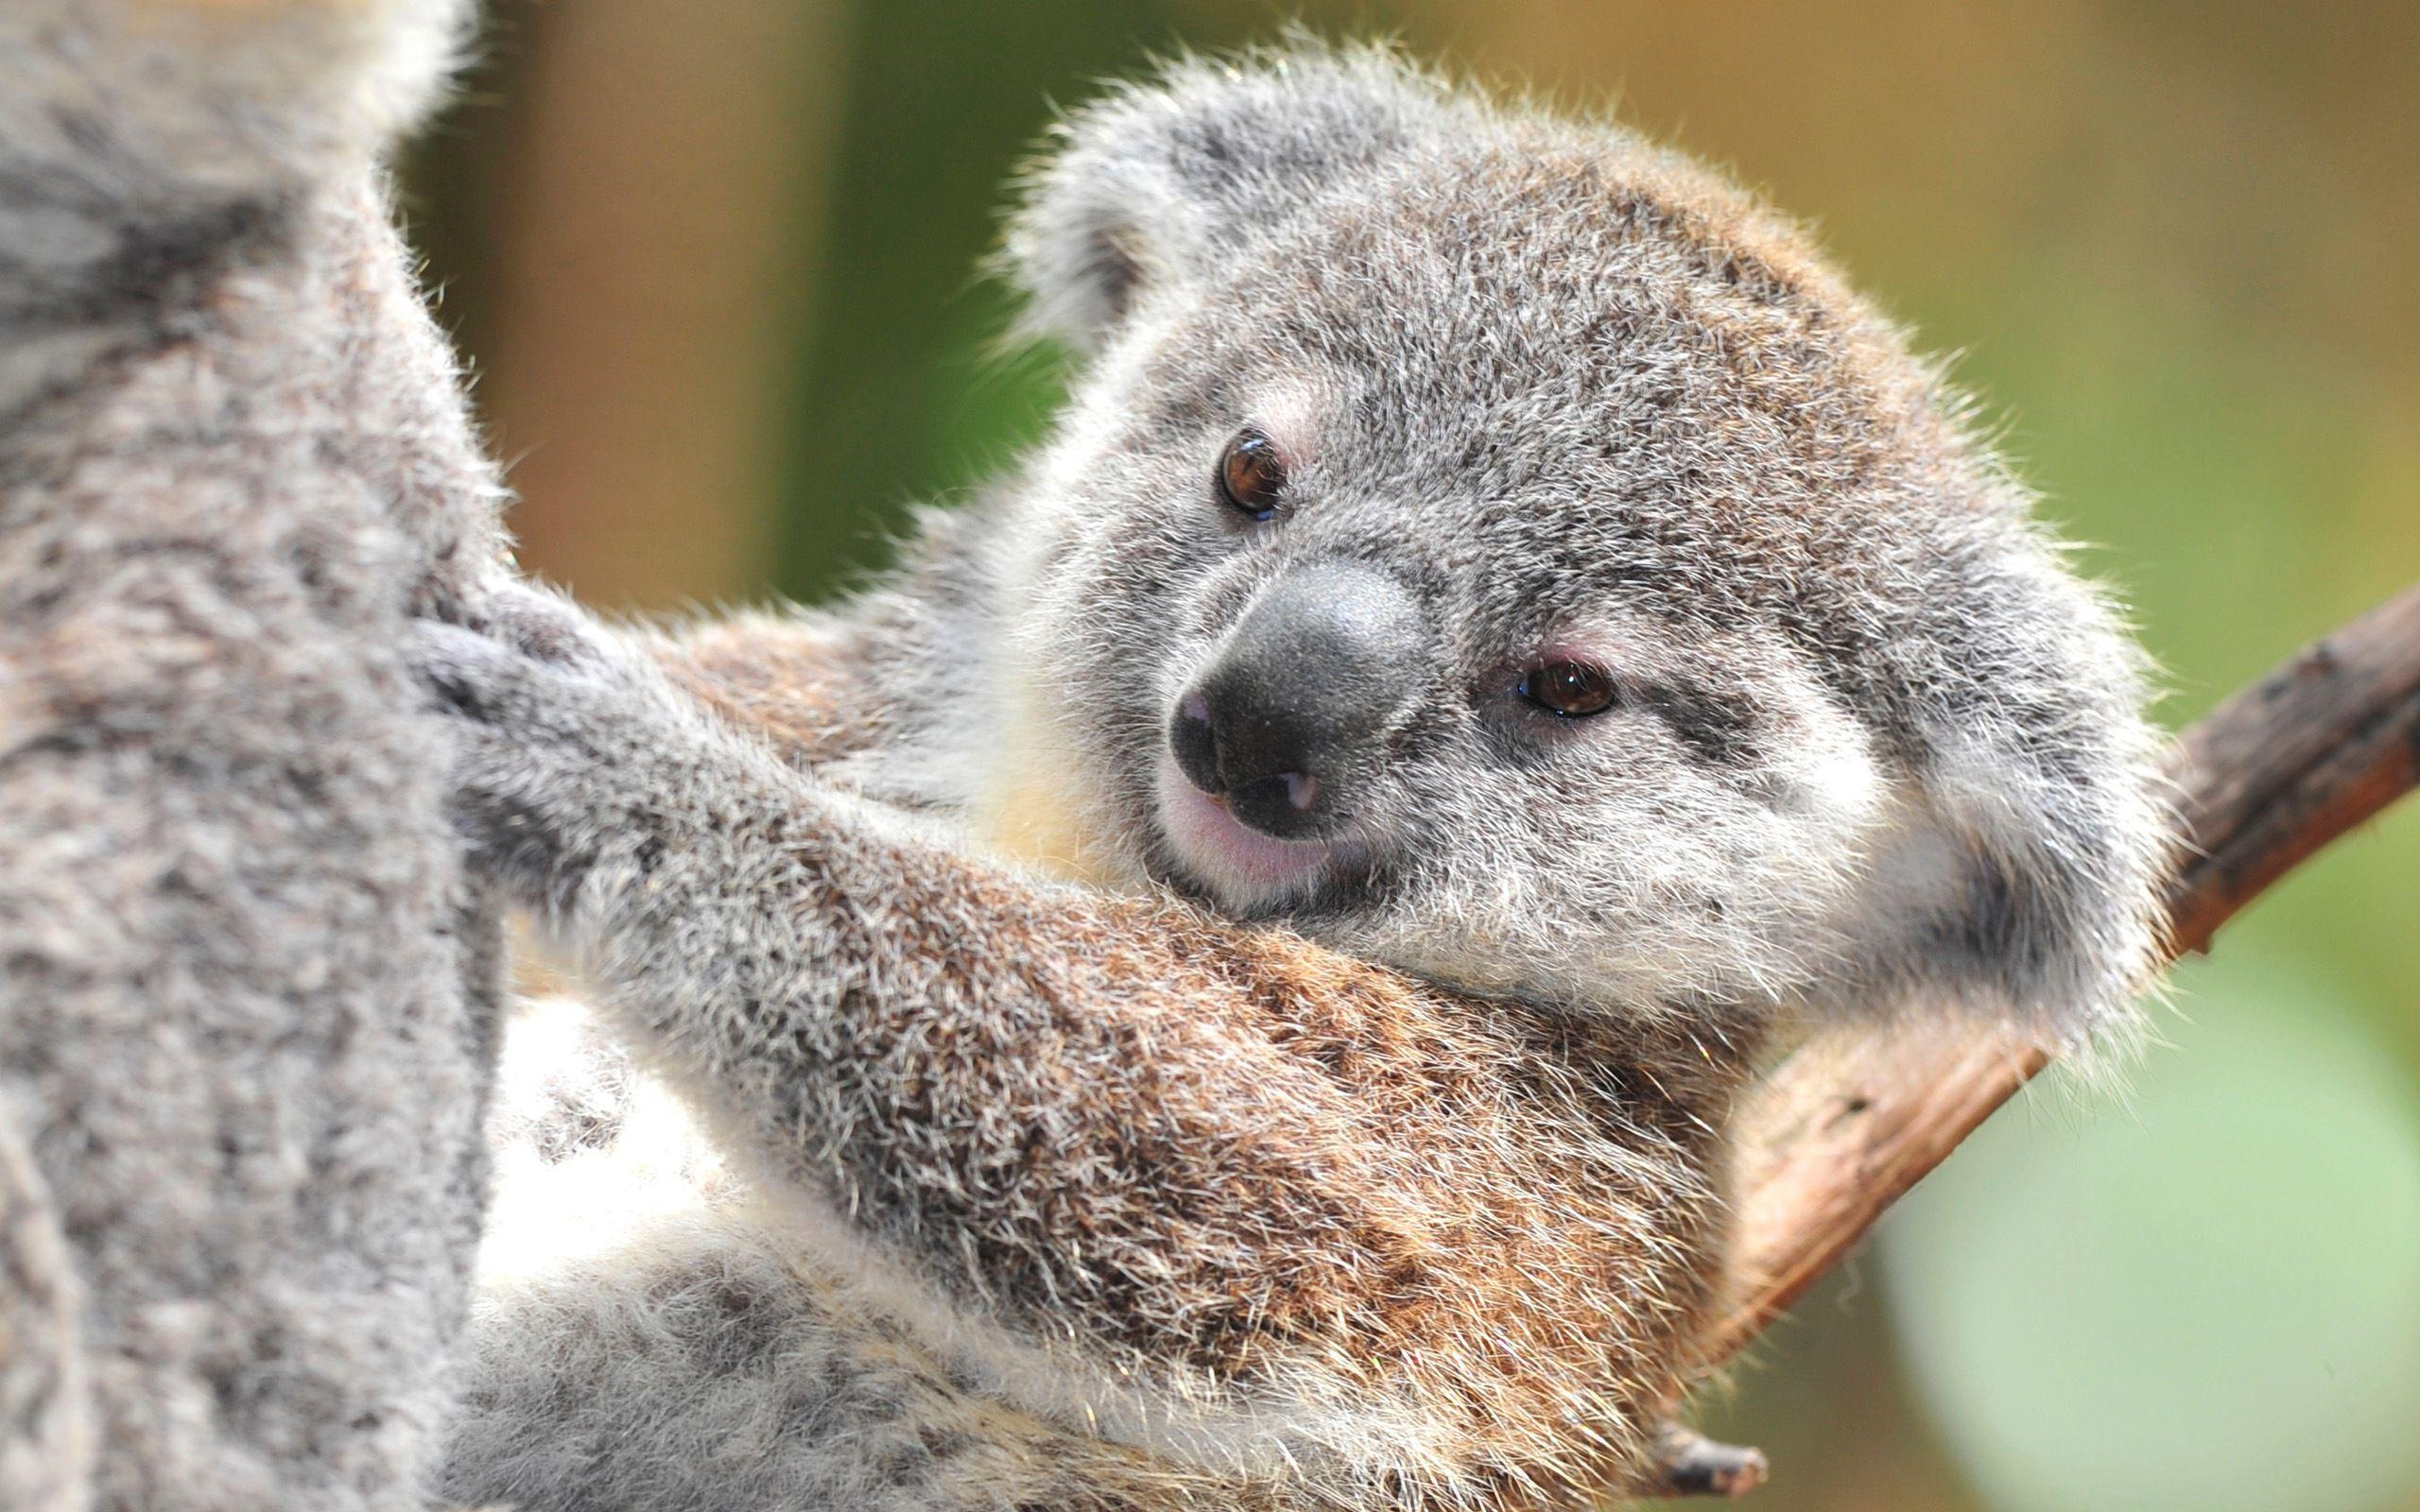 Download Koala Wallpaper 12958 2560x1600 px High Resolution ...